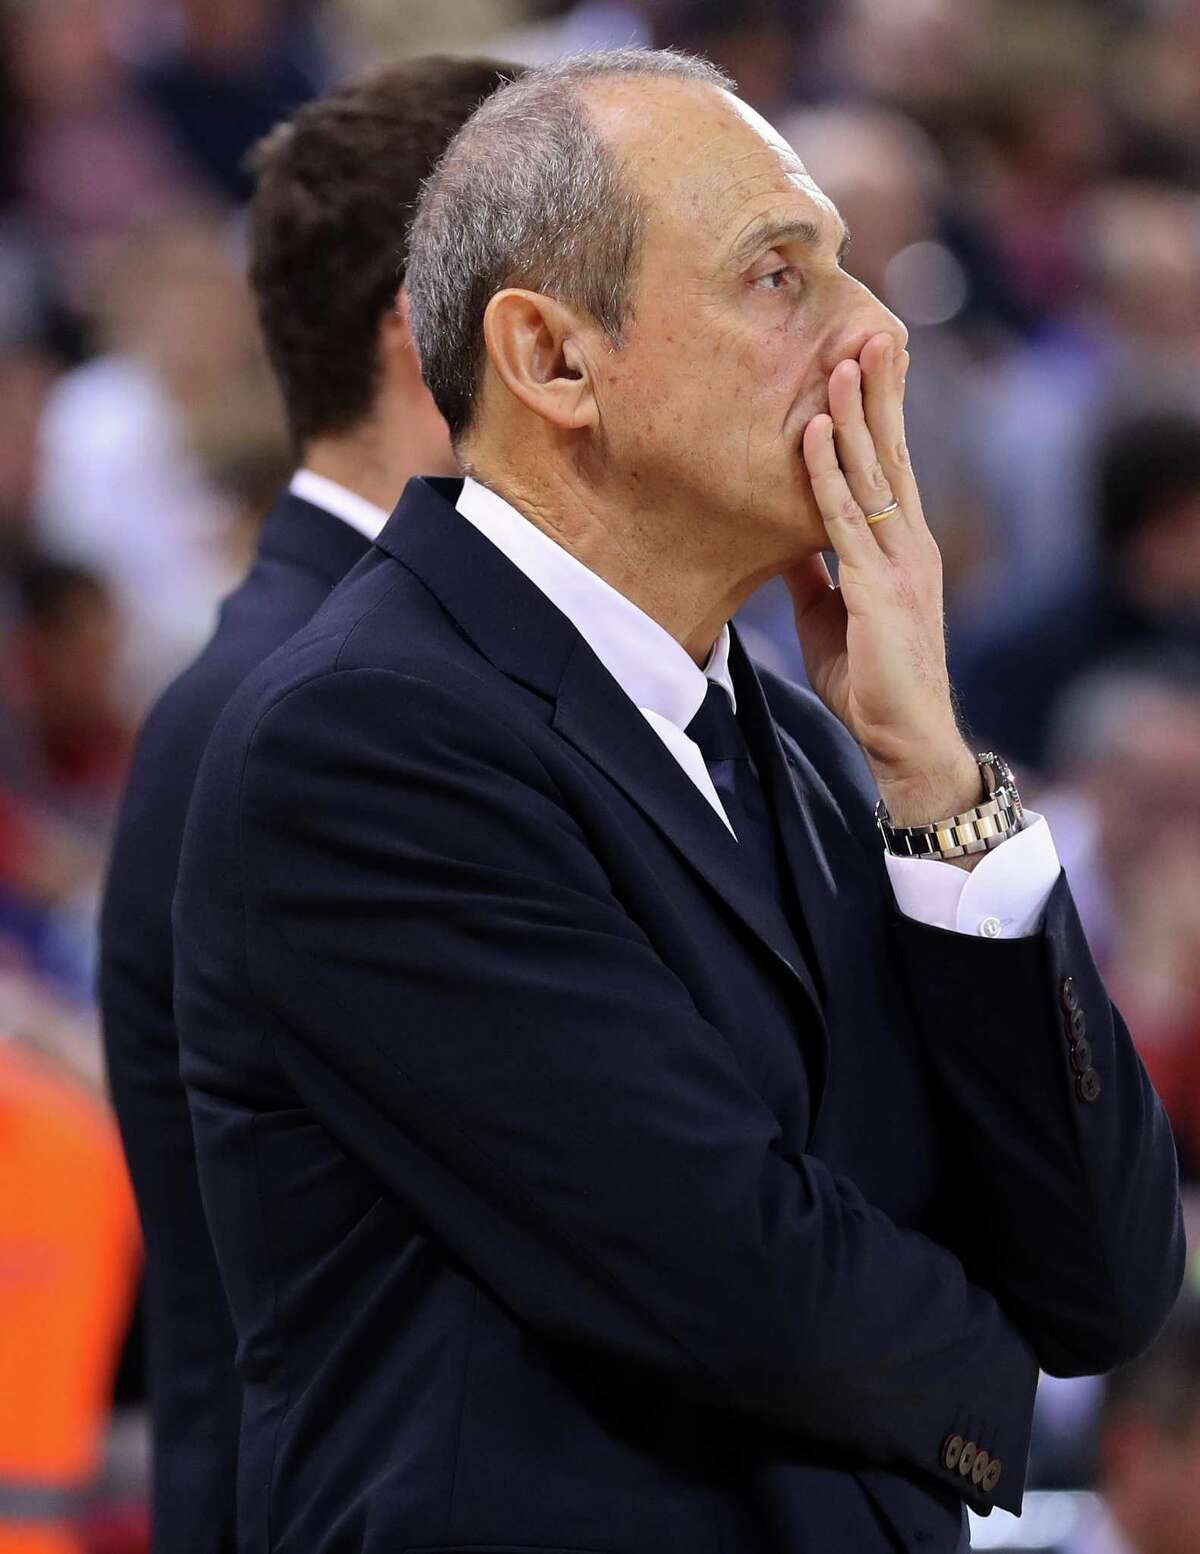 Ettore Messina during the match between FC Barcelona and AX Armani Exchange Olimpia Milano, corresponding to the week 24 of the Eurleague, played at the Palau Blaugrana, on 07th february 2020, in Barcelona, Spain. (Photo by Joan Valls/Urbanandsport /NurPhoto via Getty Images)